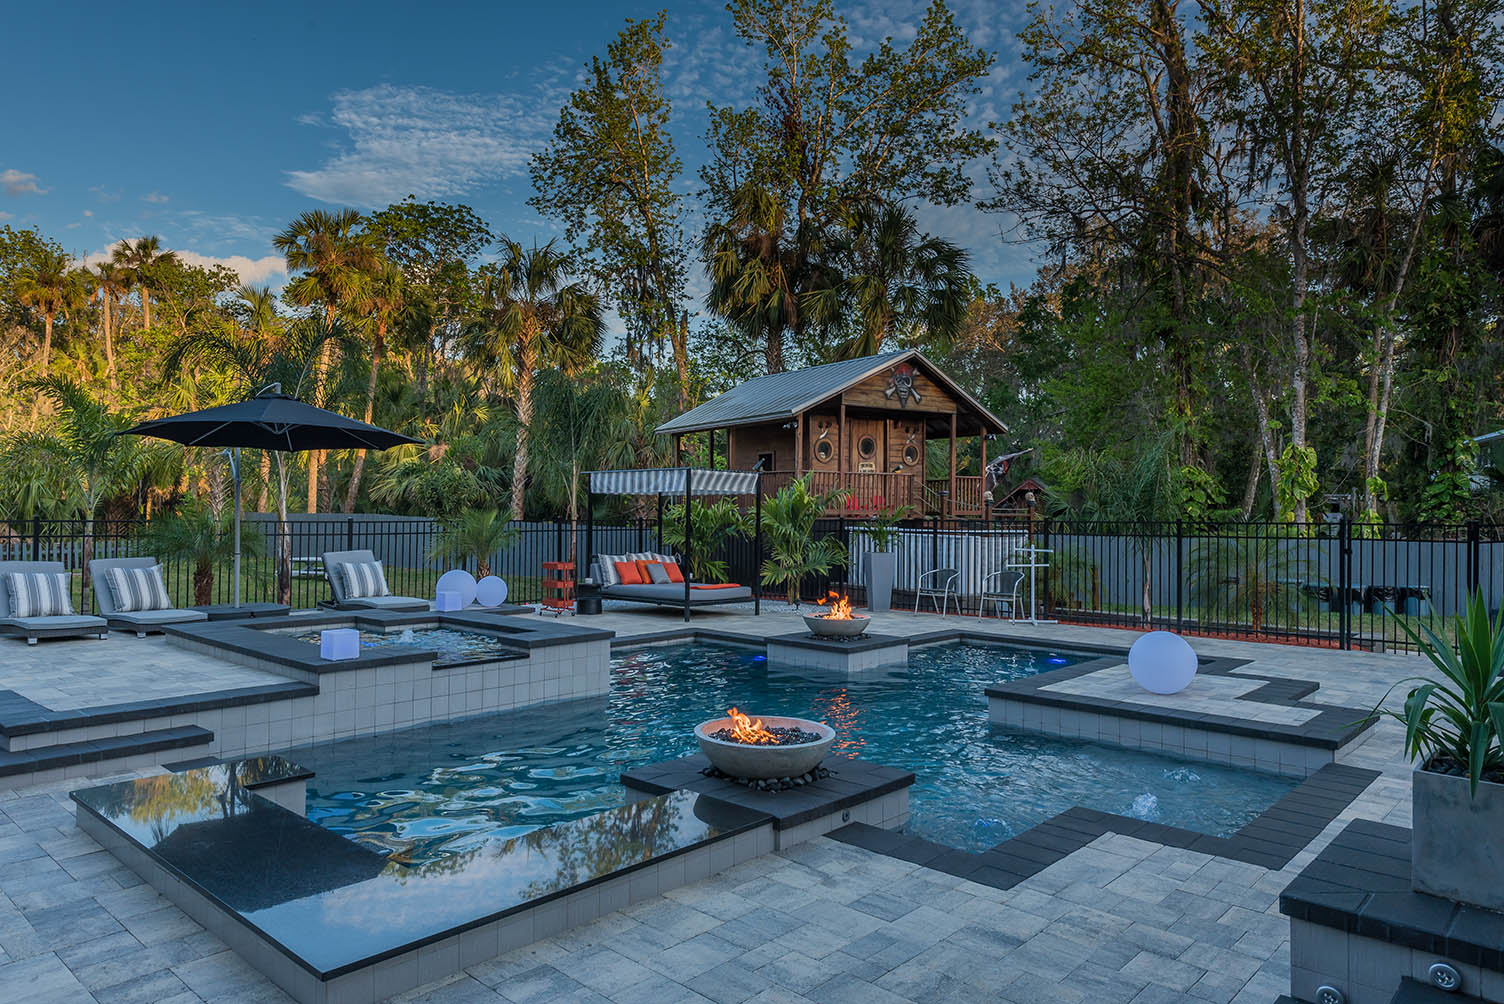 Pool Design Shapes Options And How To Choose The Right One For You